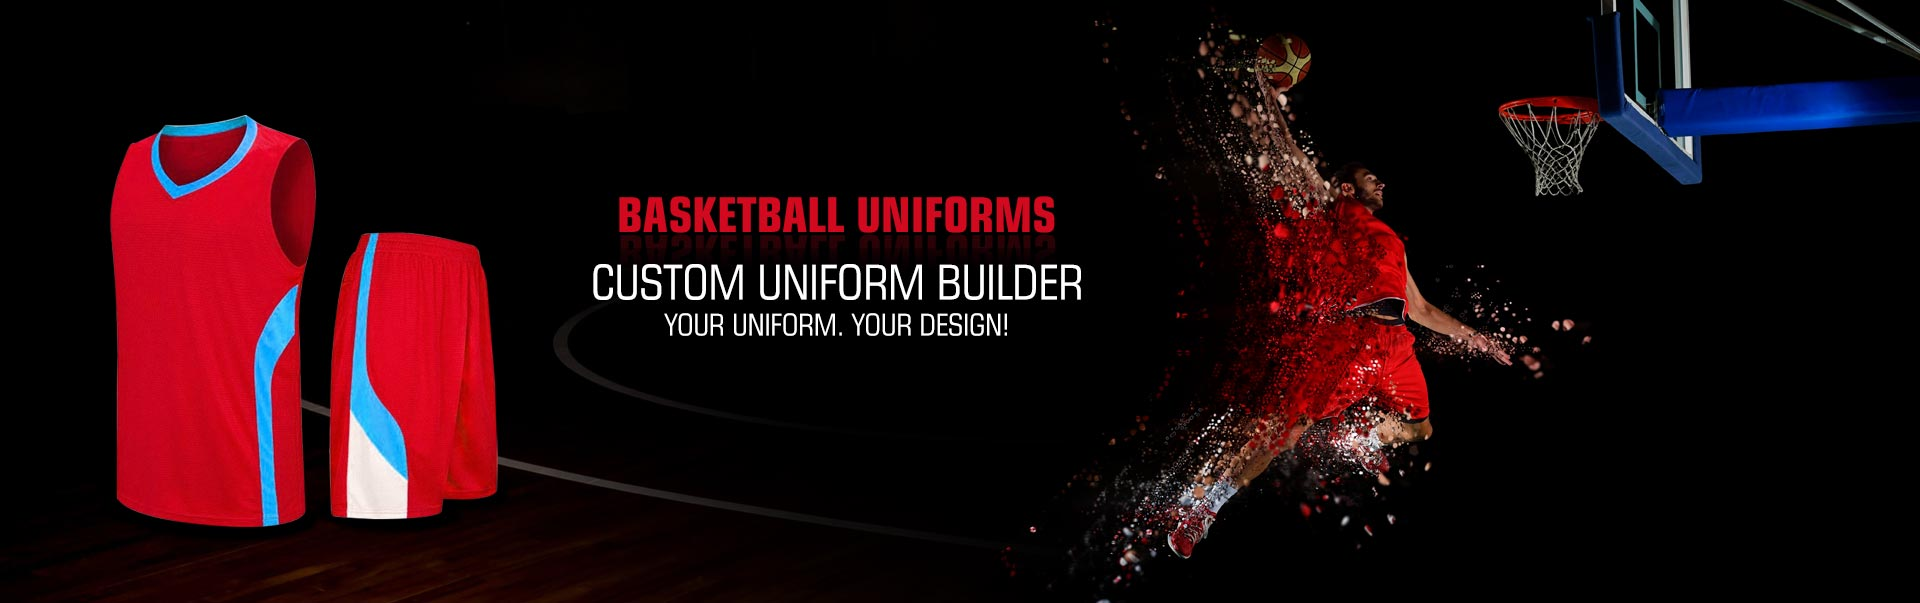 Basketball Uniforms Wholesaler, Suppliers in Switzerland